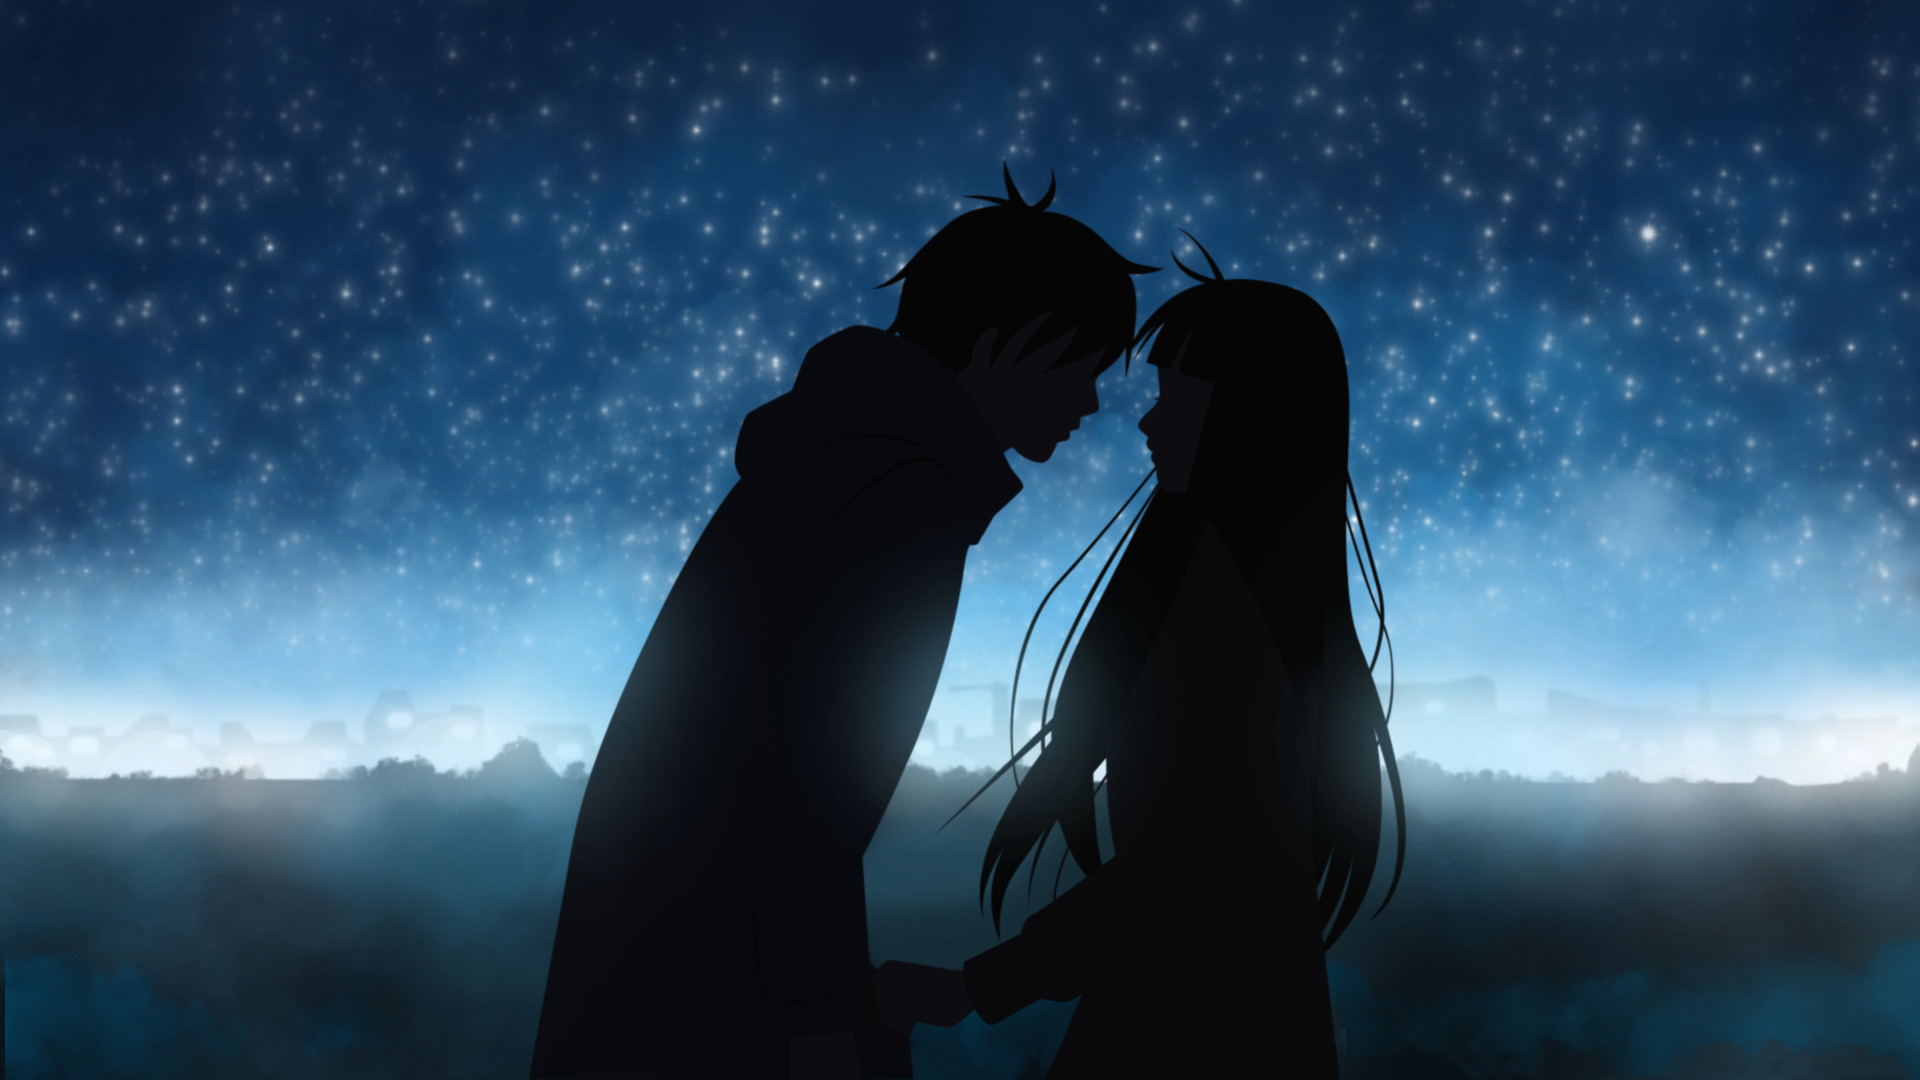 498176 anime love wallpapers 1920x1080 iphone